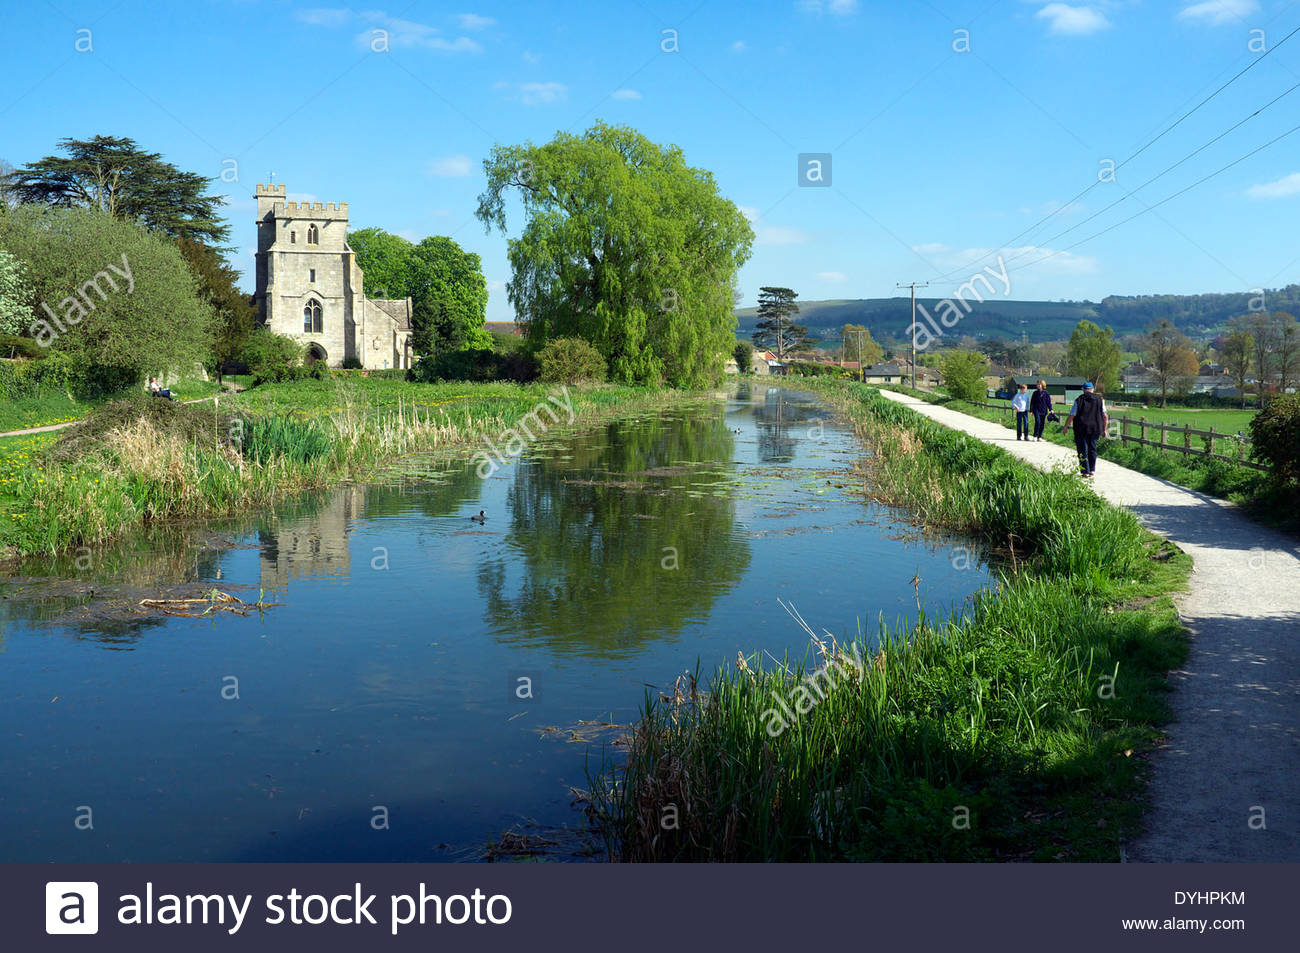 stcyrs-church-in-stonehouse-near-stroud-stroudwater-navigation-canal-DYHPKM.jpg